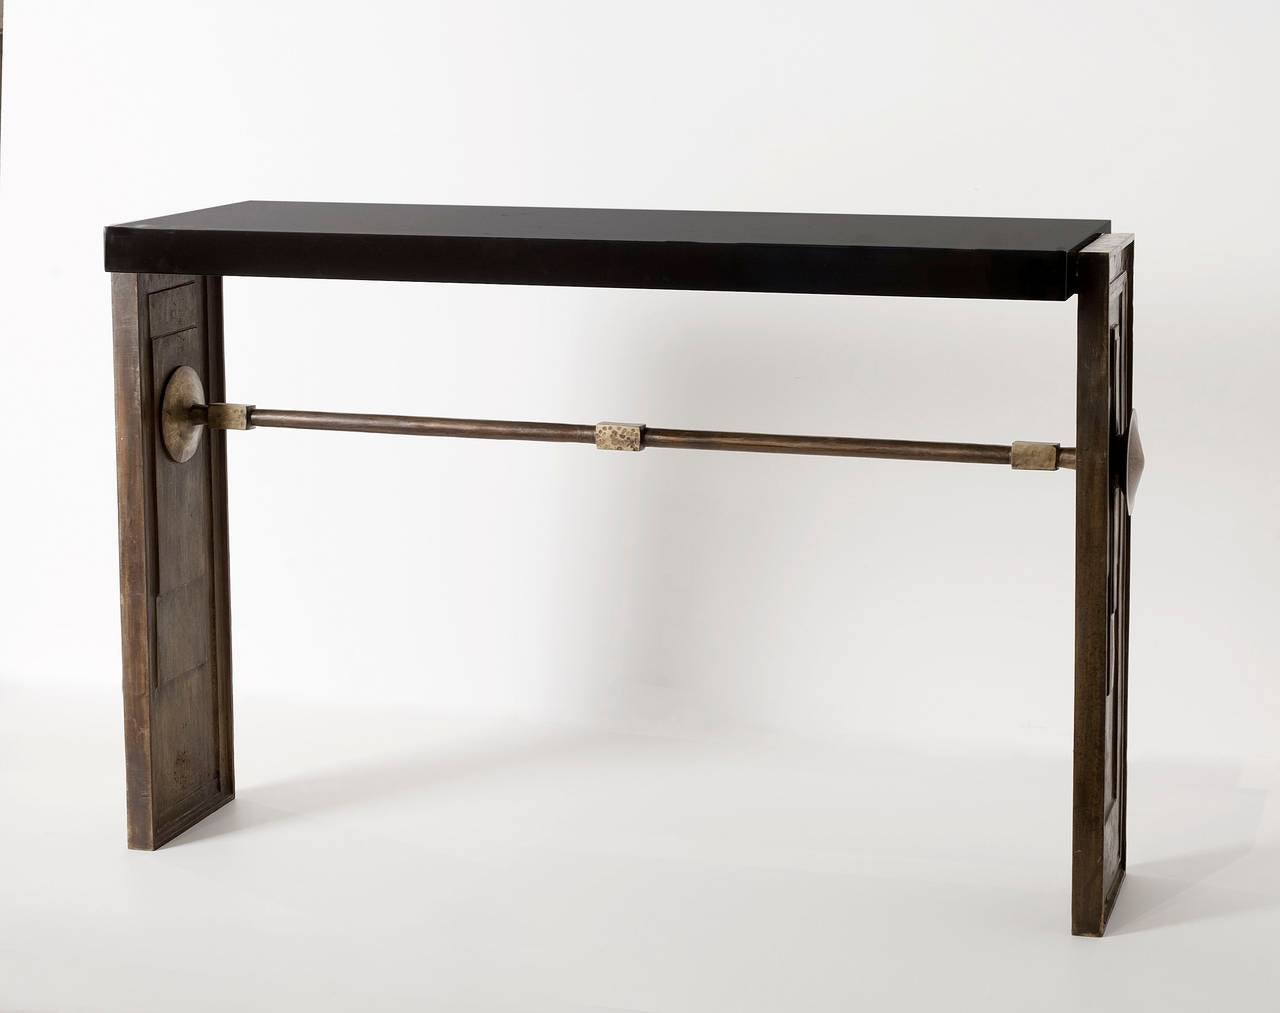 Mid 20th century bronze and lacquer console at 1stdibs for Mid 20th century furniture